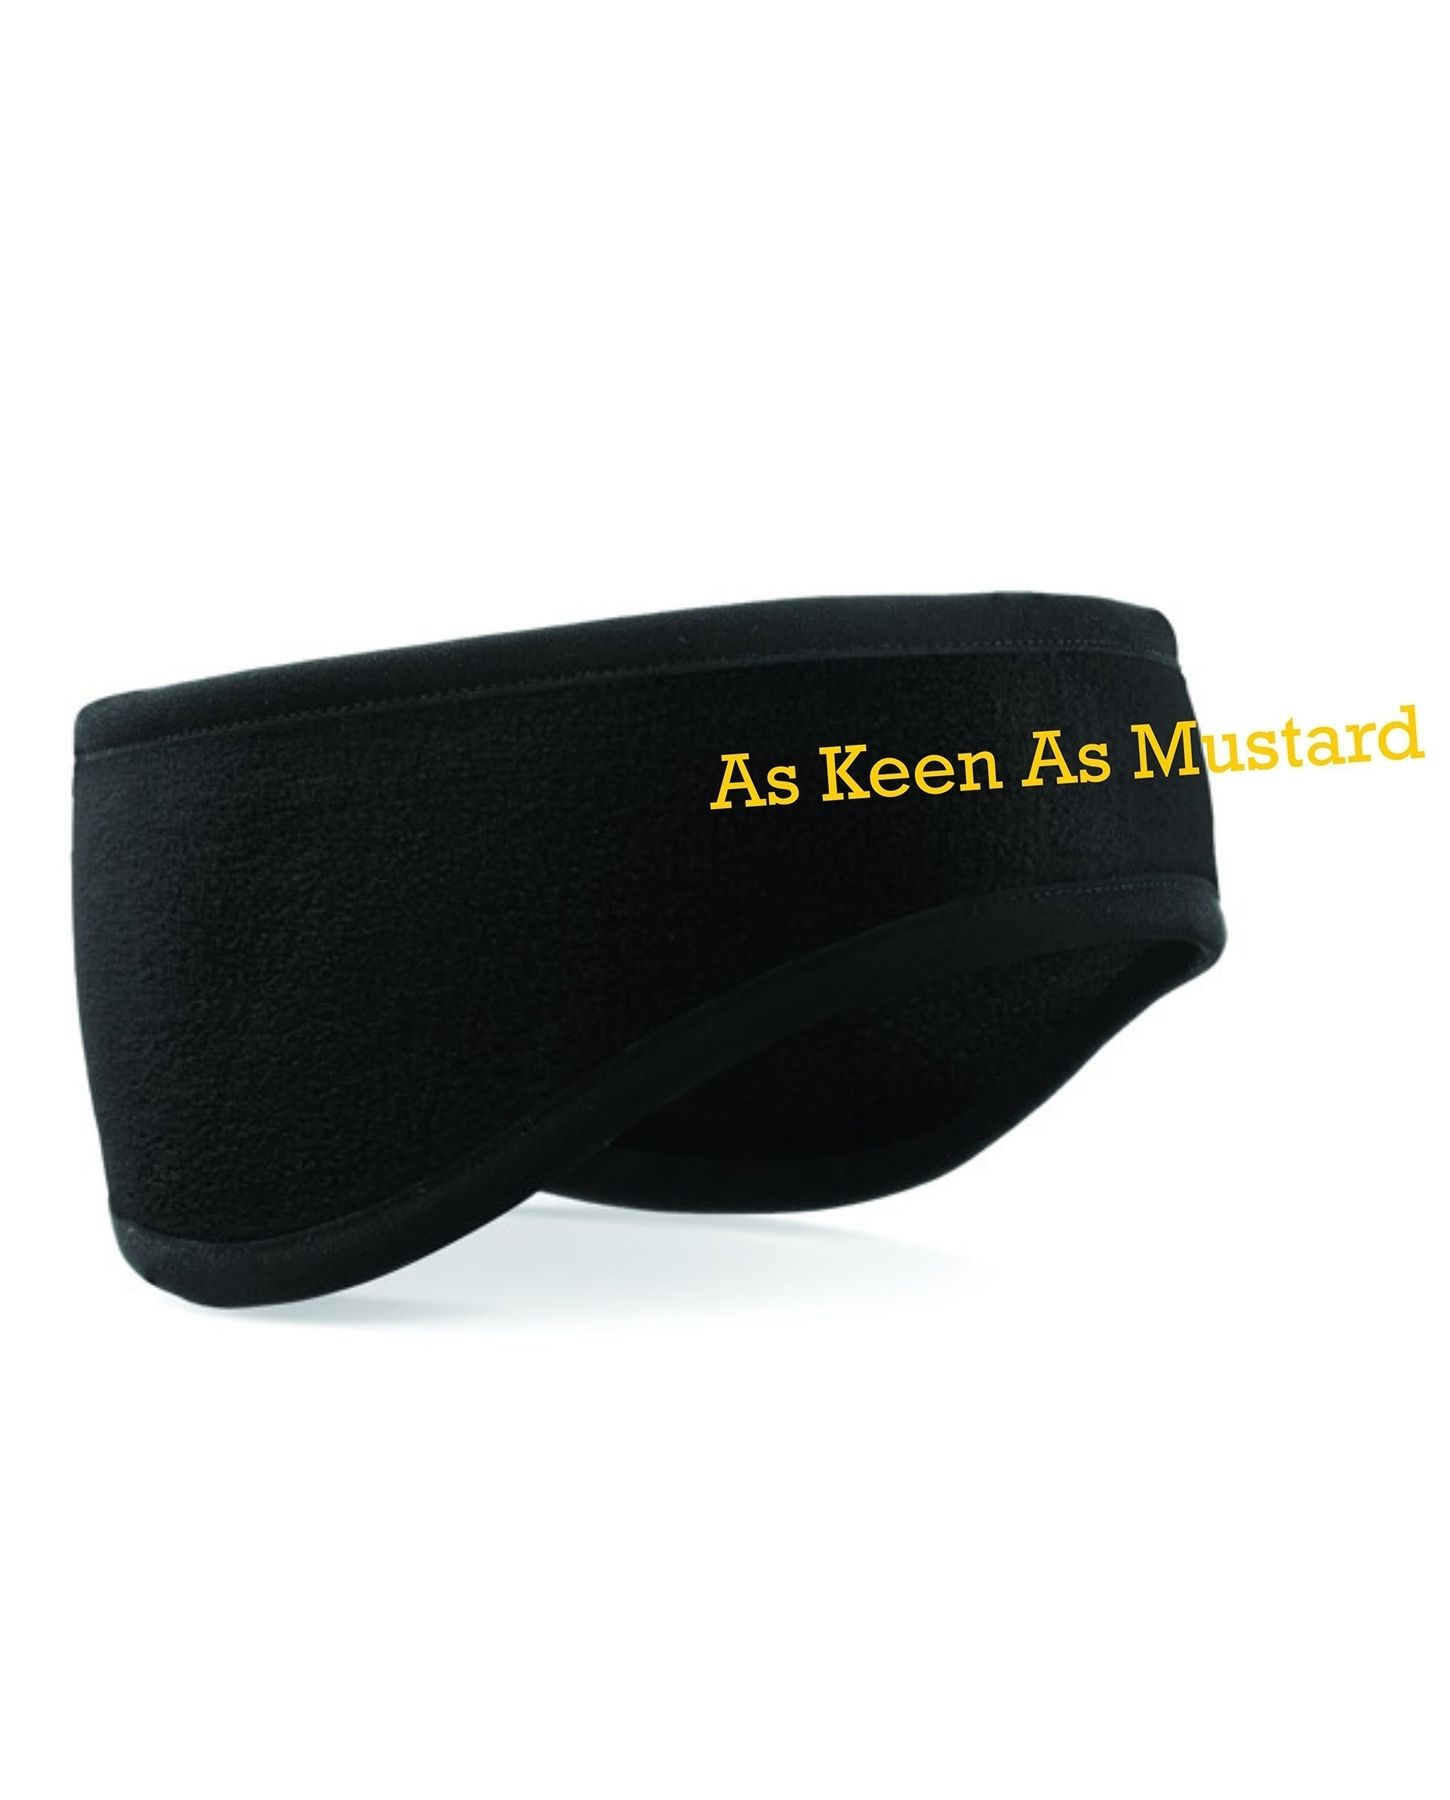 As Keen As Mustard – Suprafleece™ Headband